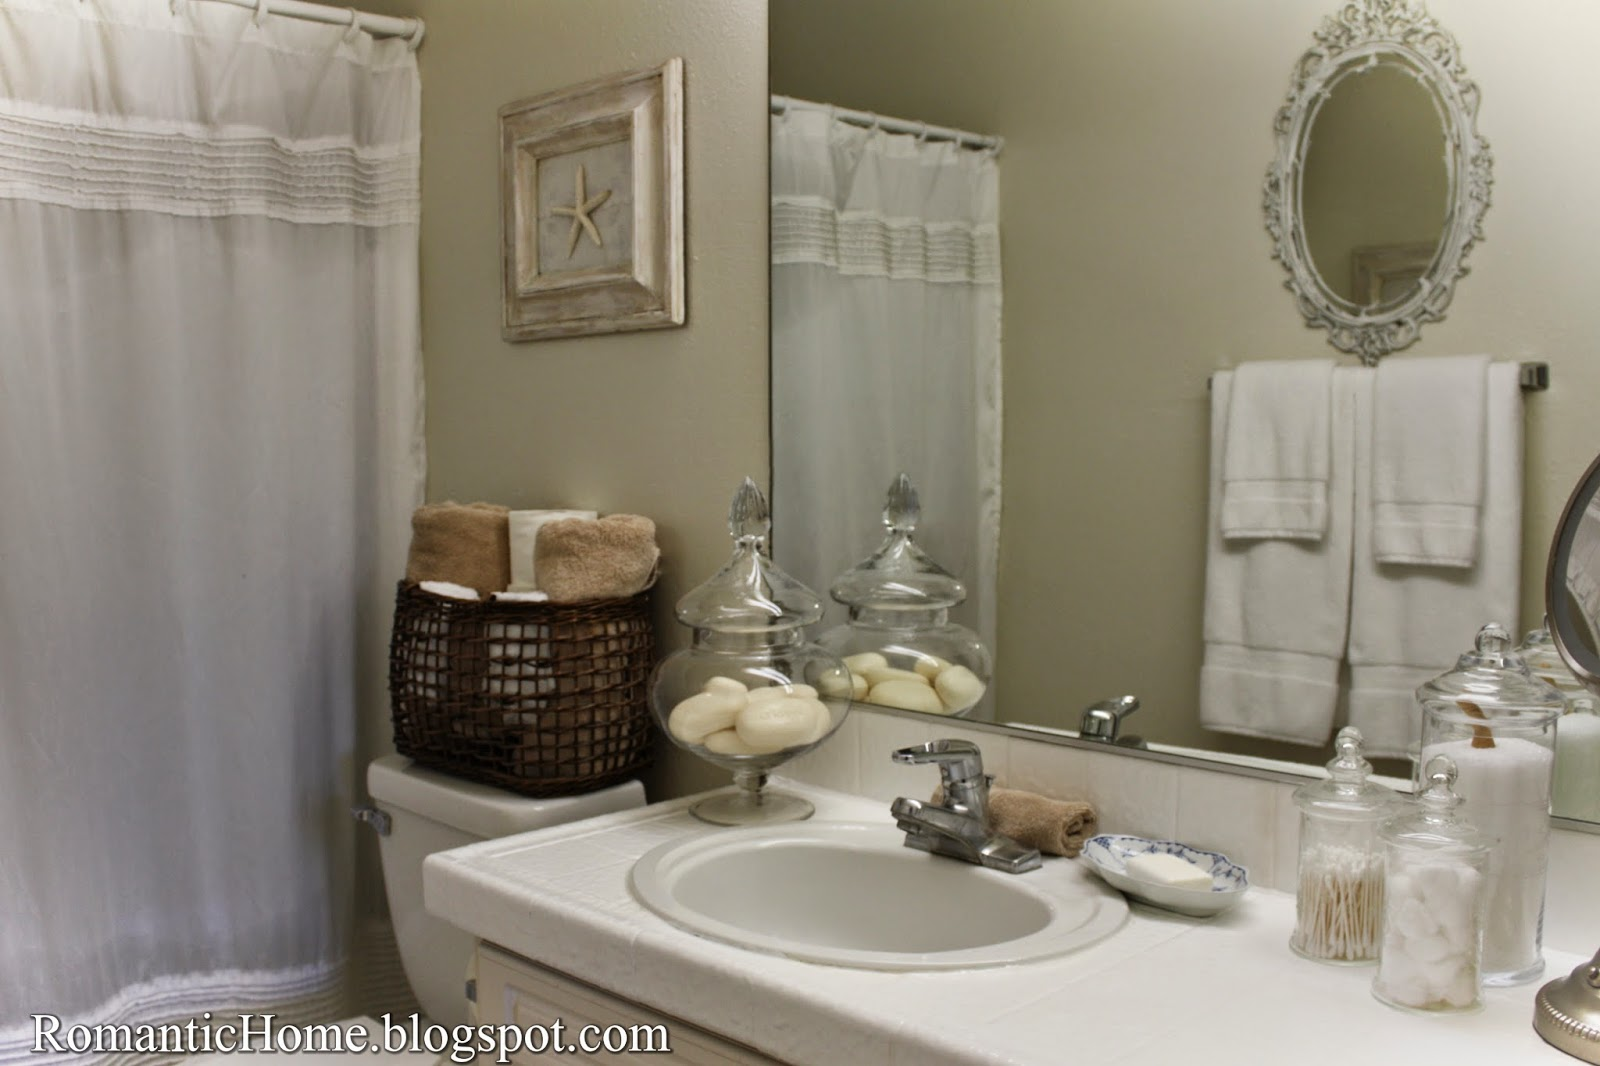 My Romantic Home: My Master Bathroom - Show and Tell Friday